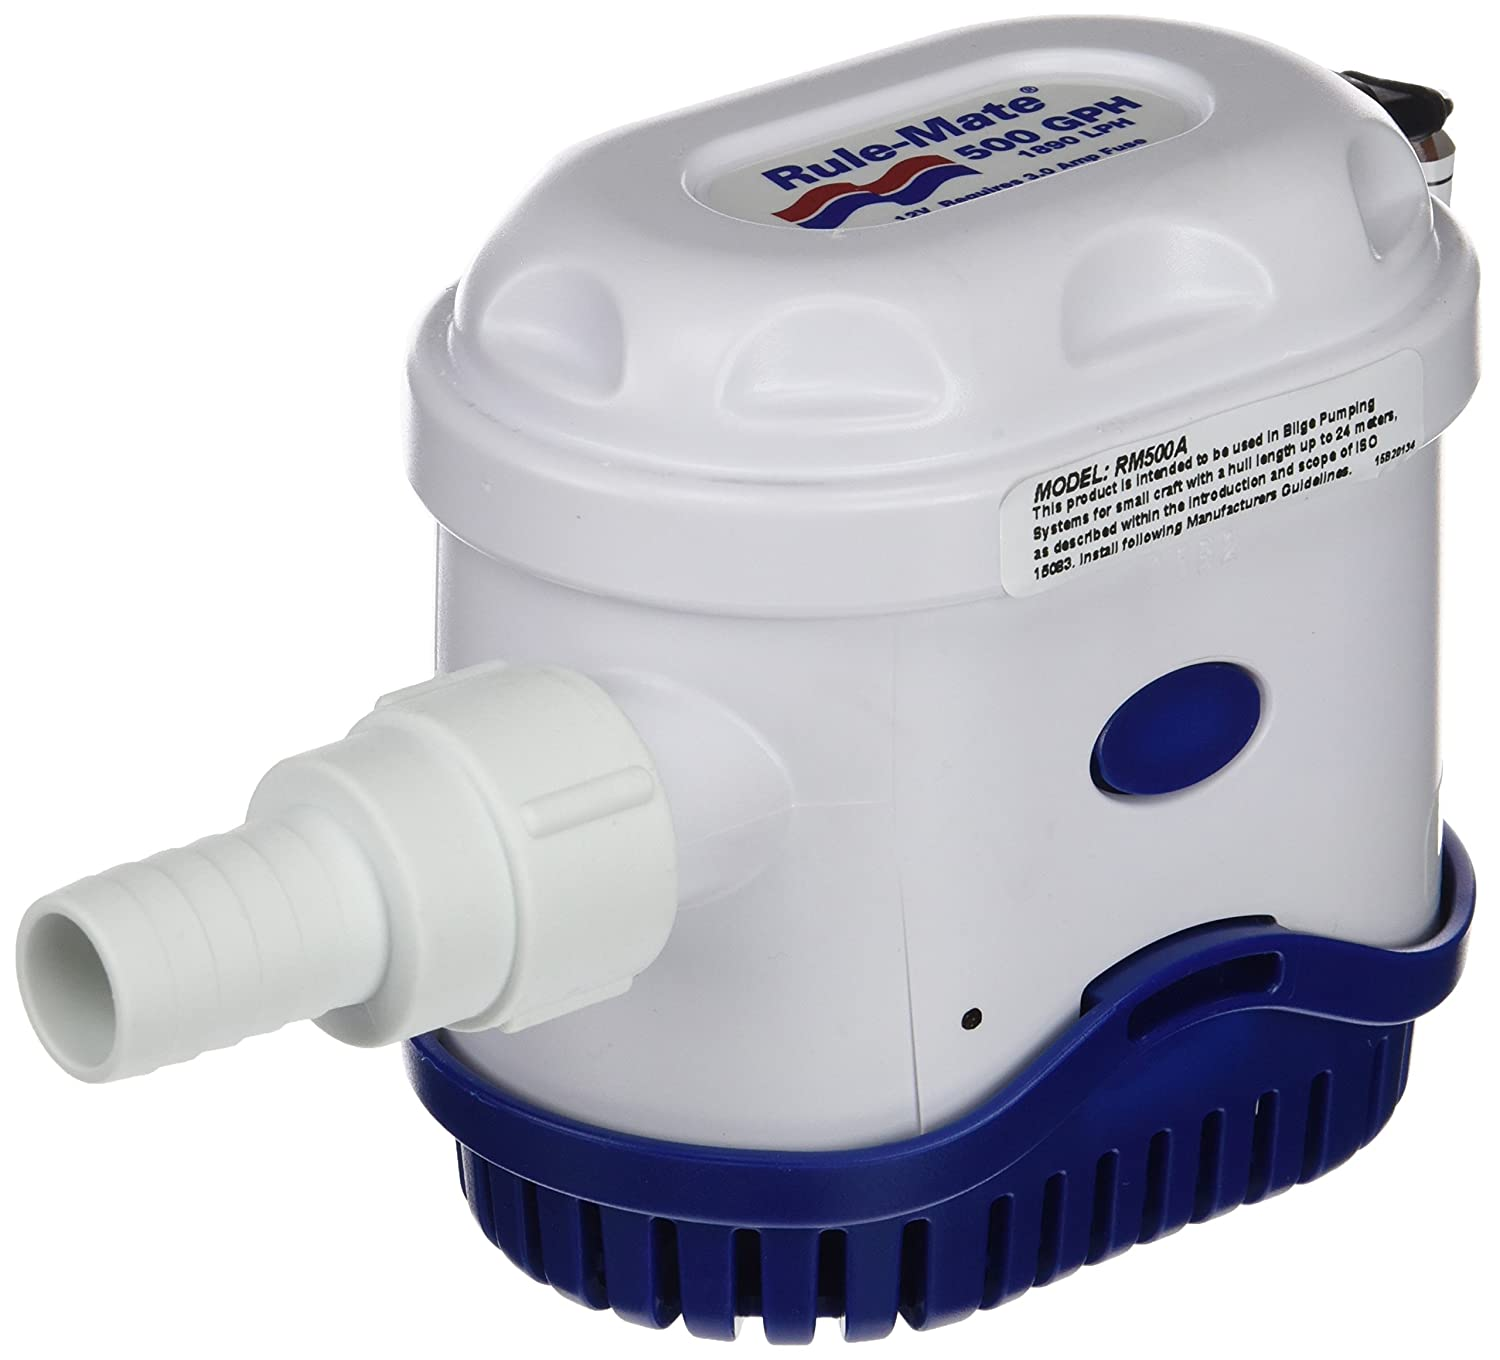 81MBL450L5L._SL1500_ amazon com rule mate automated bilge pump, no float switch  at crackthecode.co